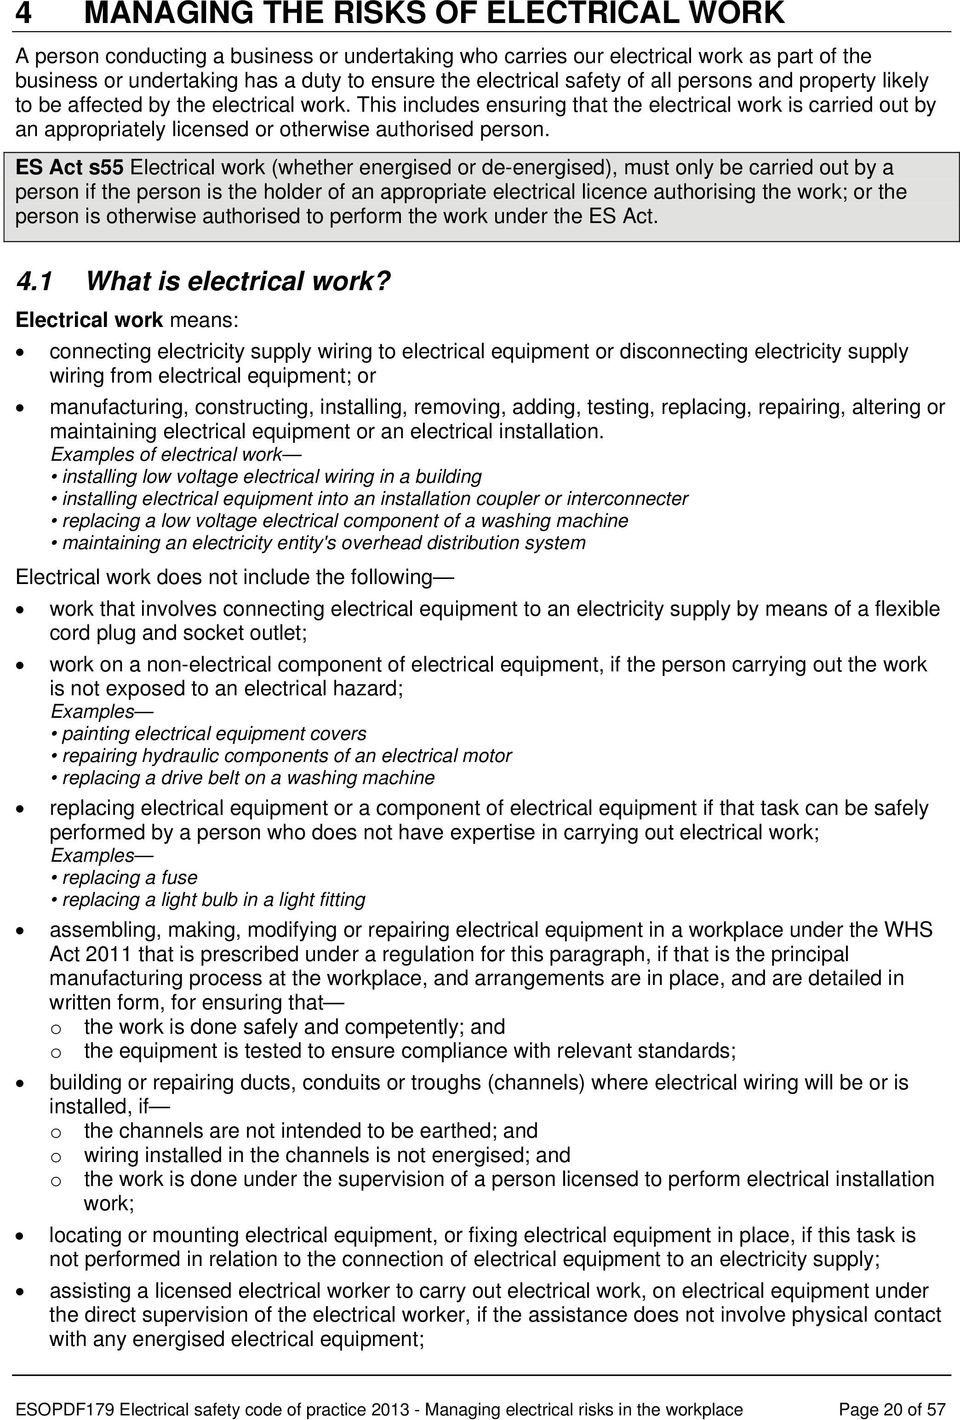 ES Act s55 Electrical work (whether energised or de-energised), must only be carried out by a person if the person is the holder of an appropriate electrical licence authorising the work; or the